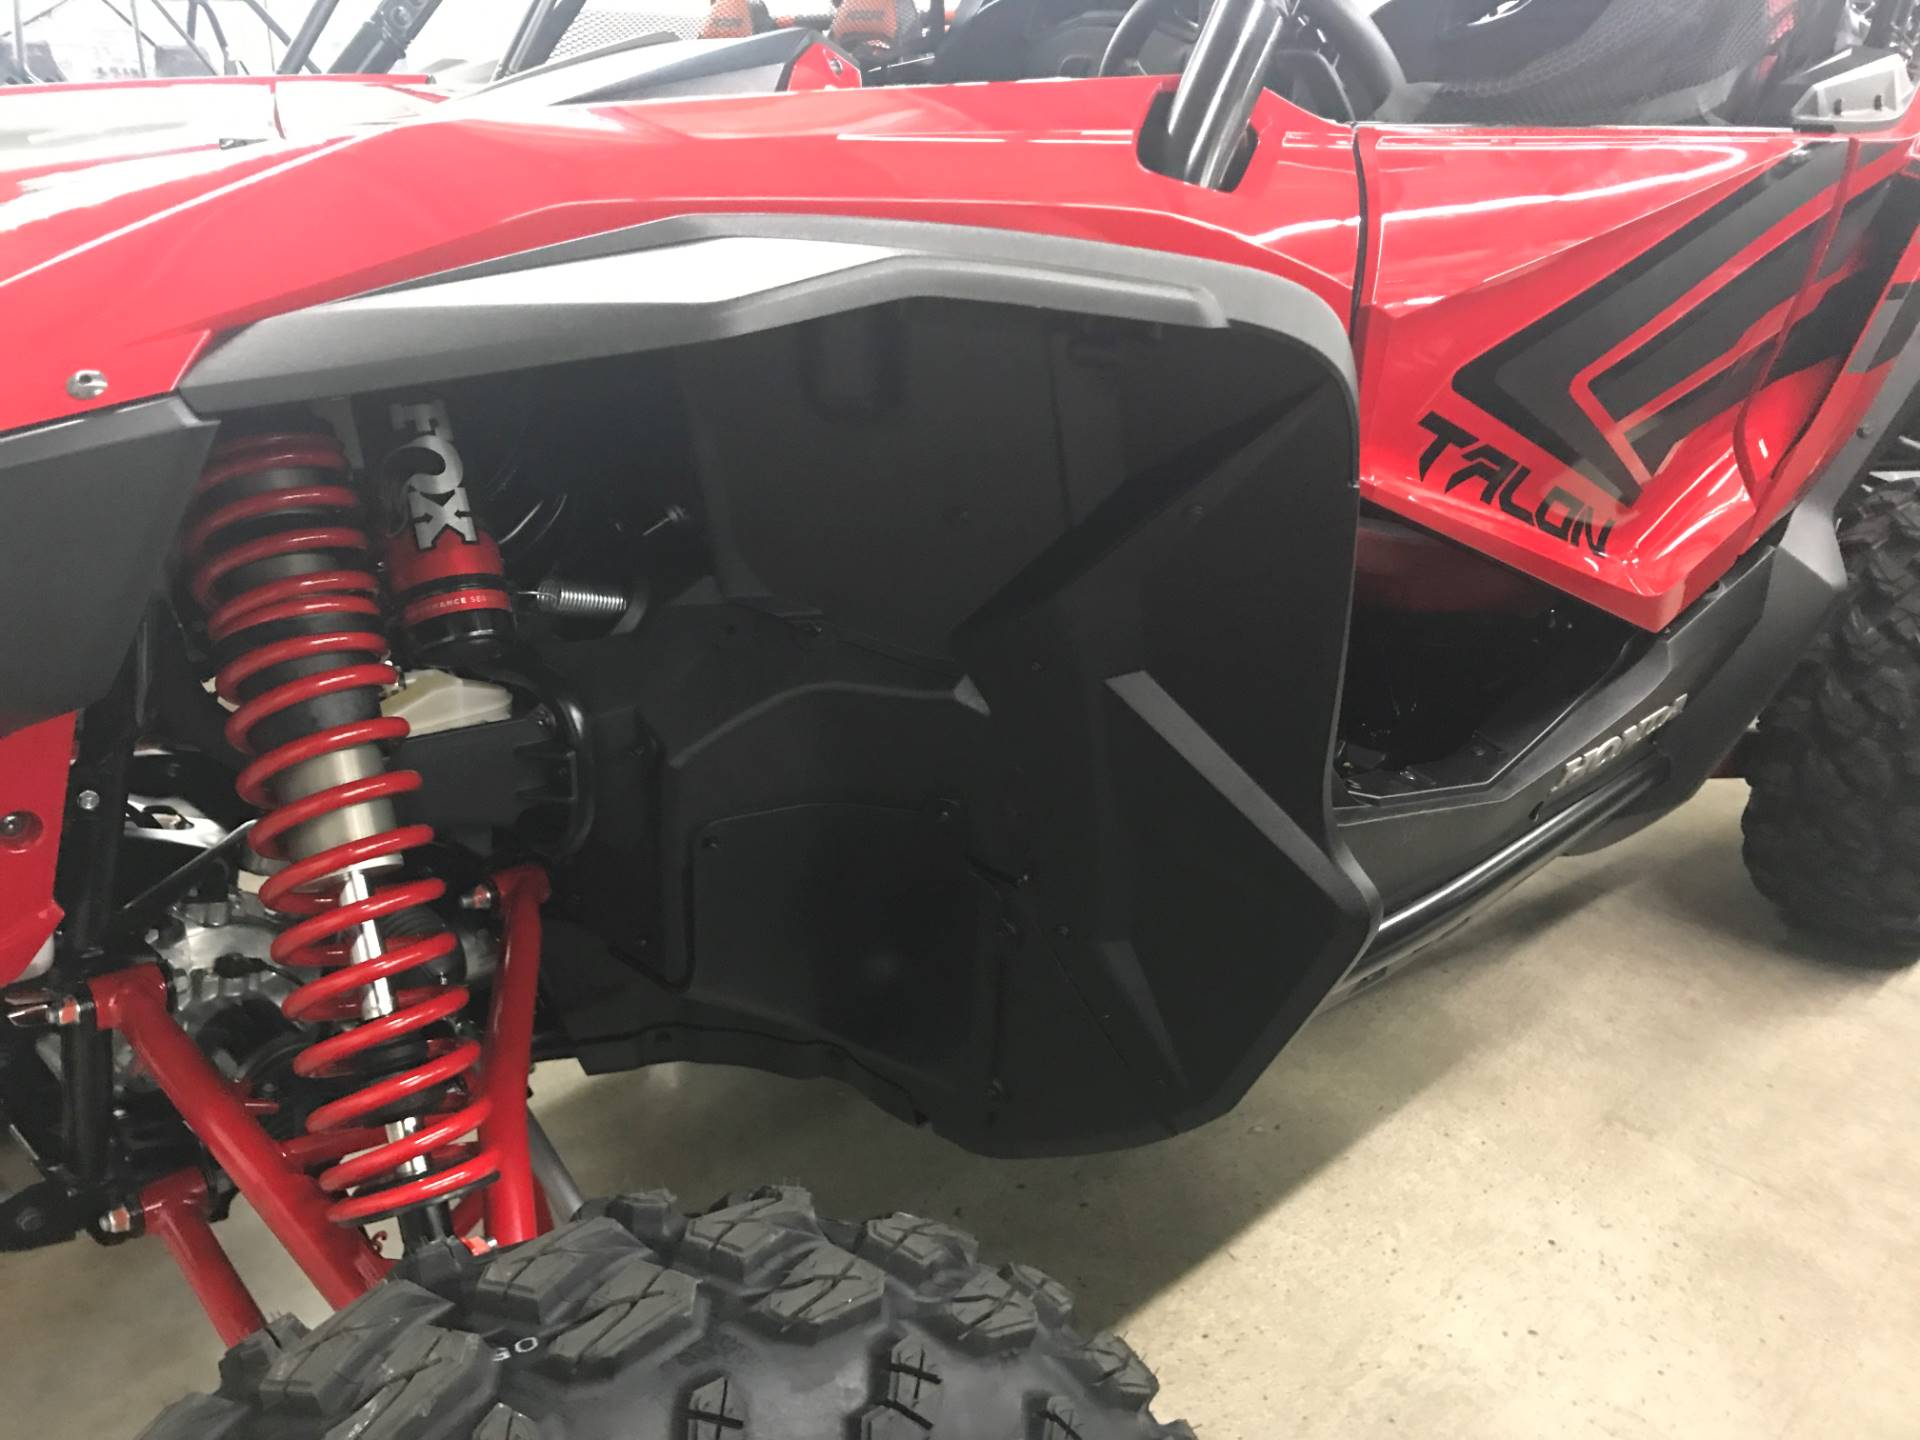 2019 honda talon 1000r in corona california photo 1